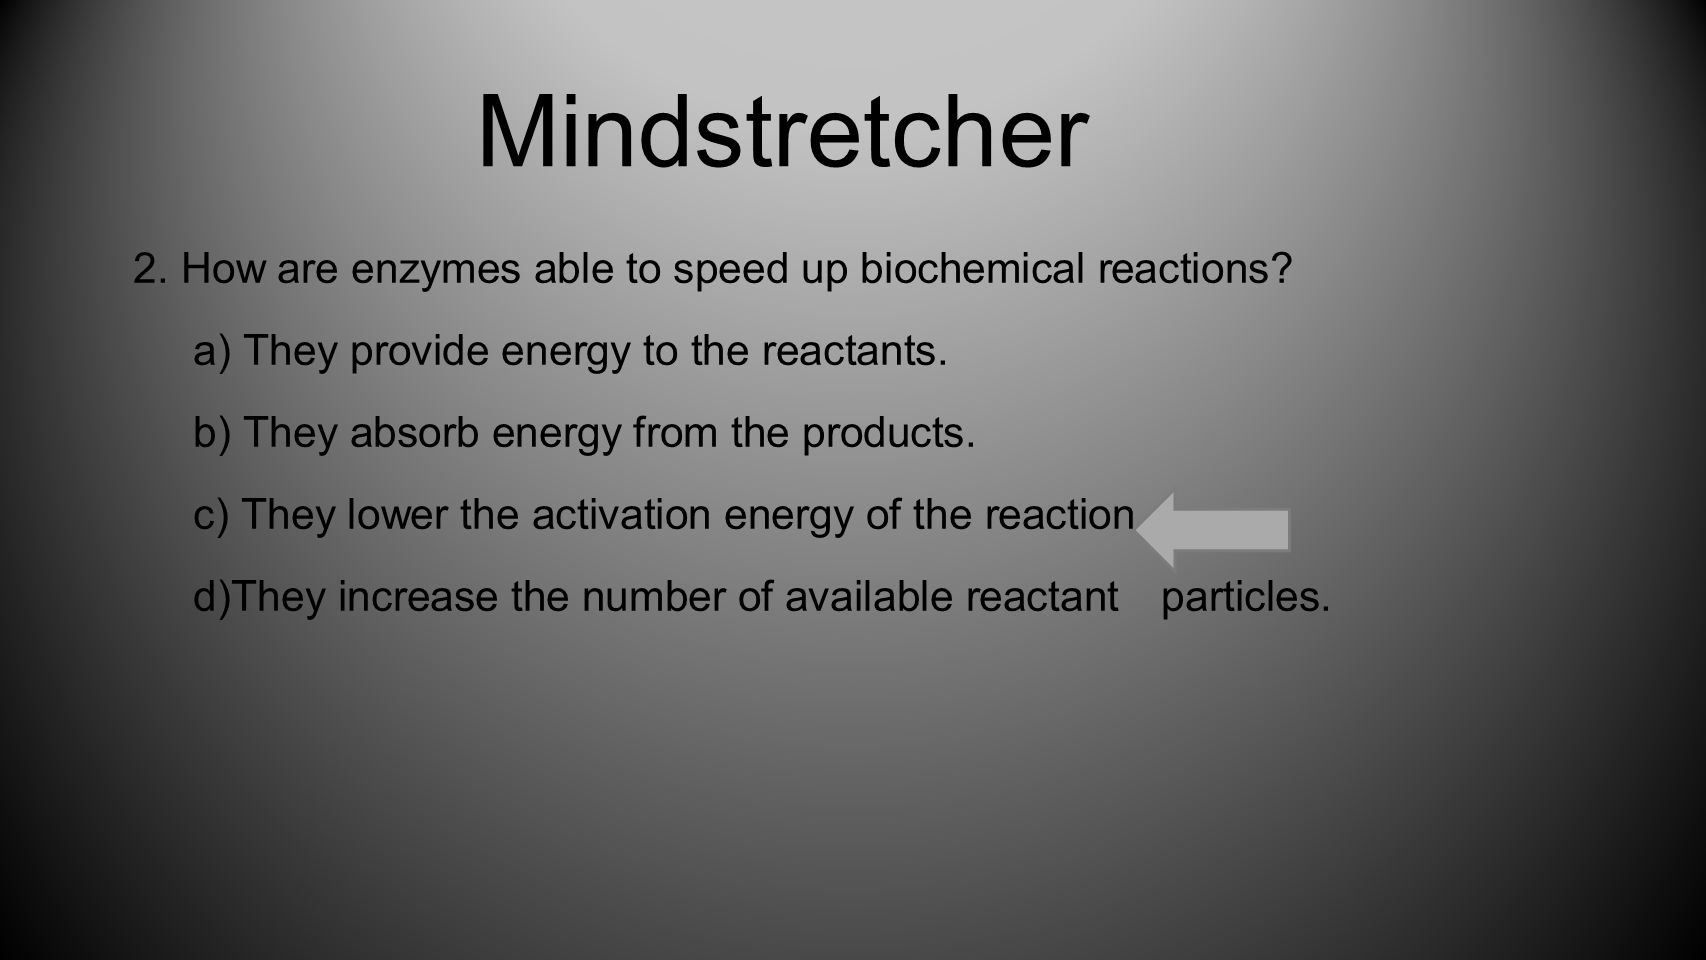 Mindstretcher 2. How are enzymes able to speed up biochemical reactions a) They provide energy to the reactants.